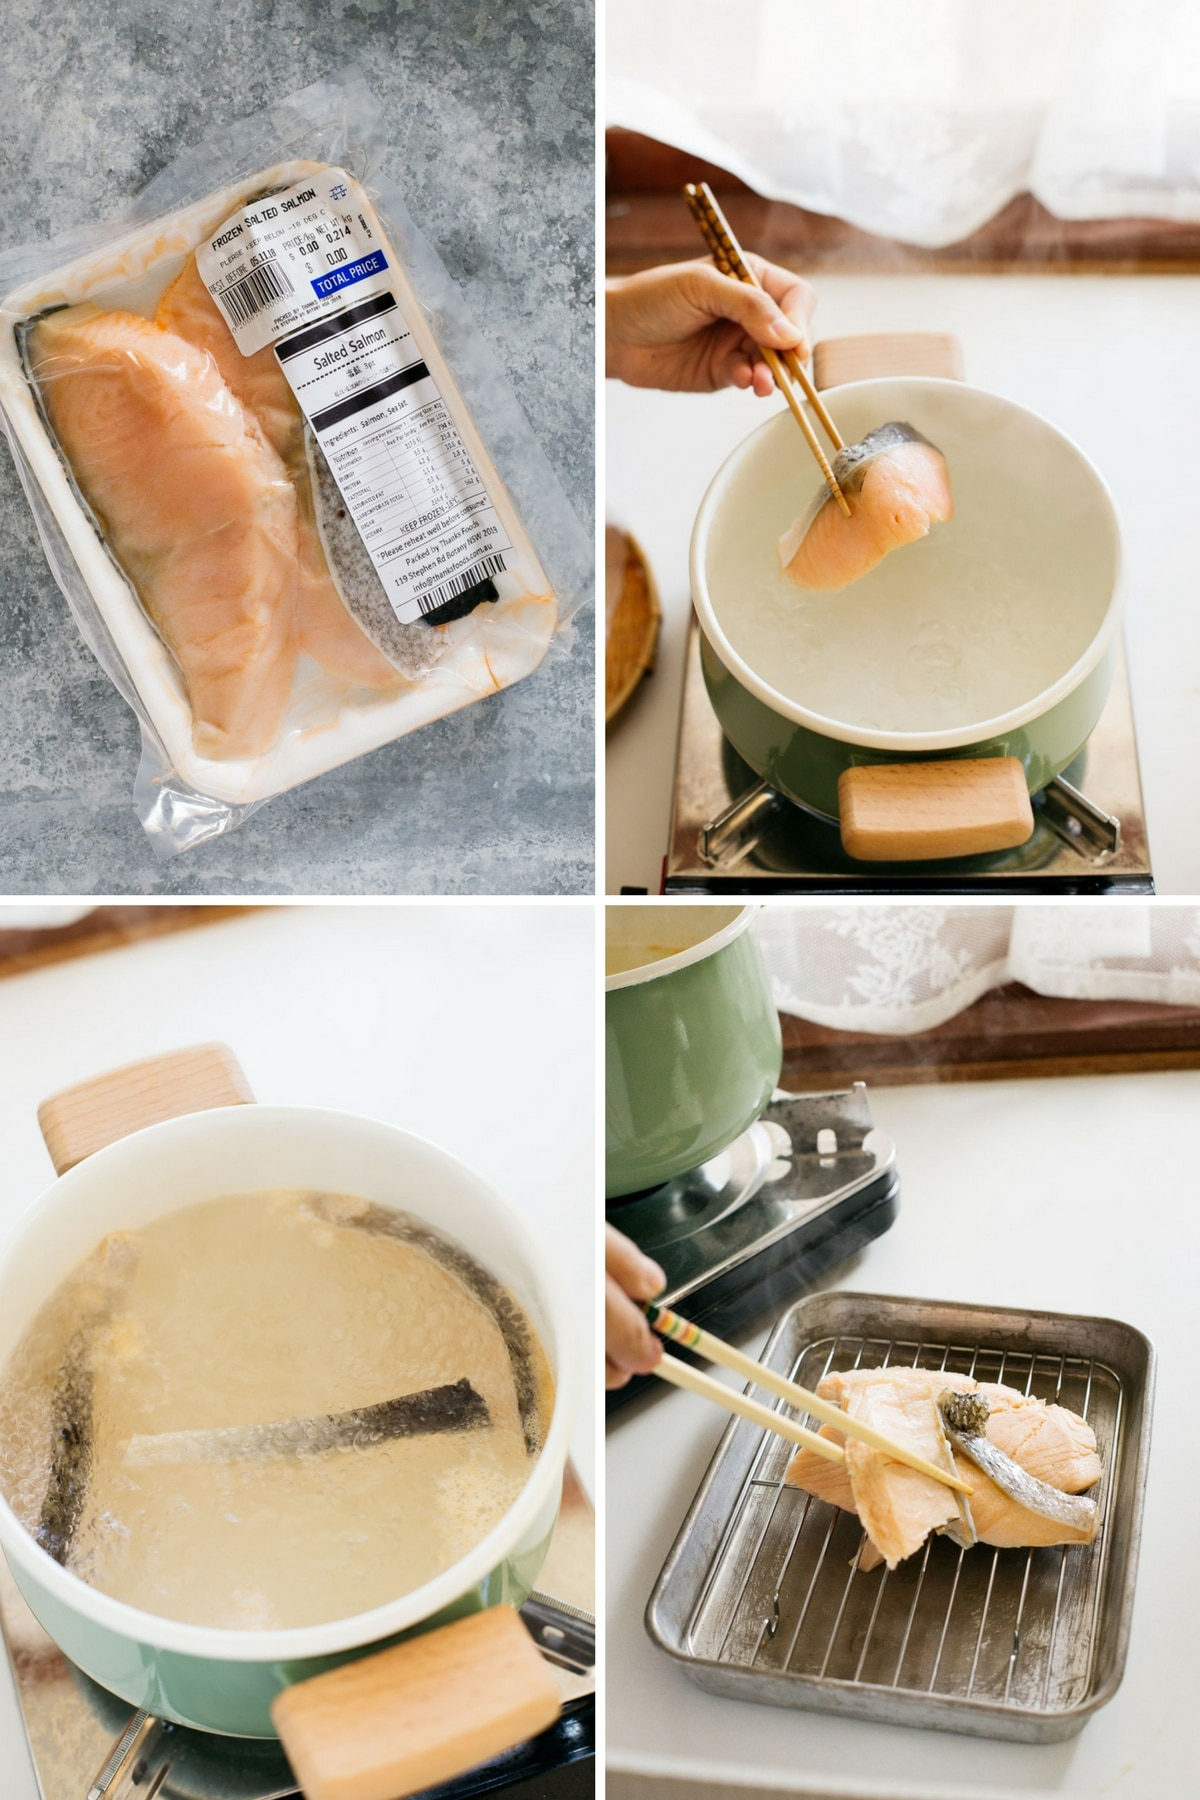 4 panels of photos showing the first 4 steps of making salmon Soboro